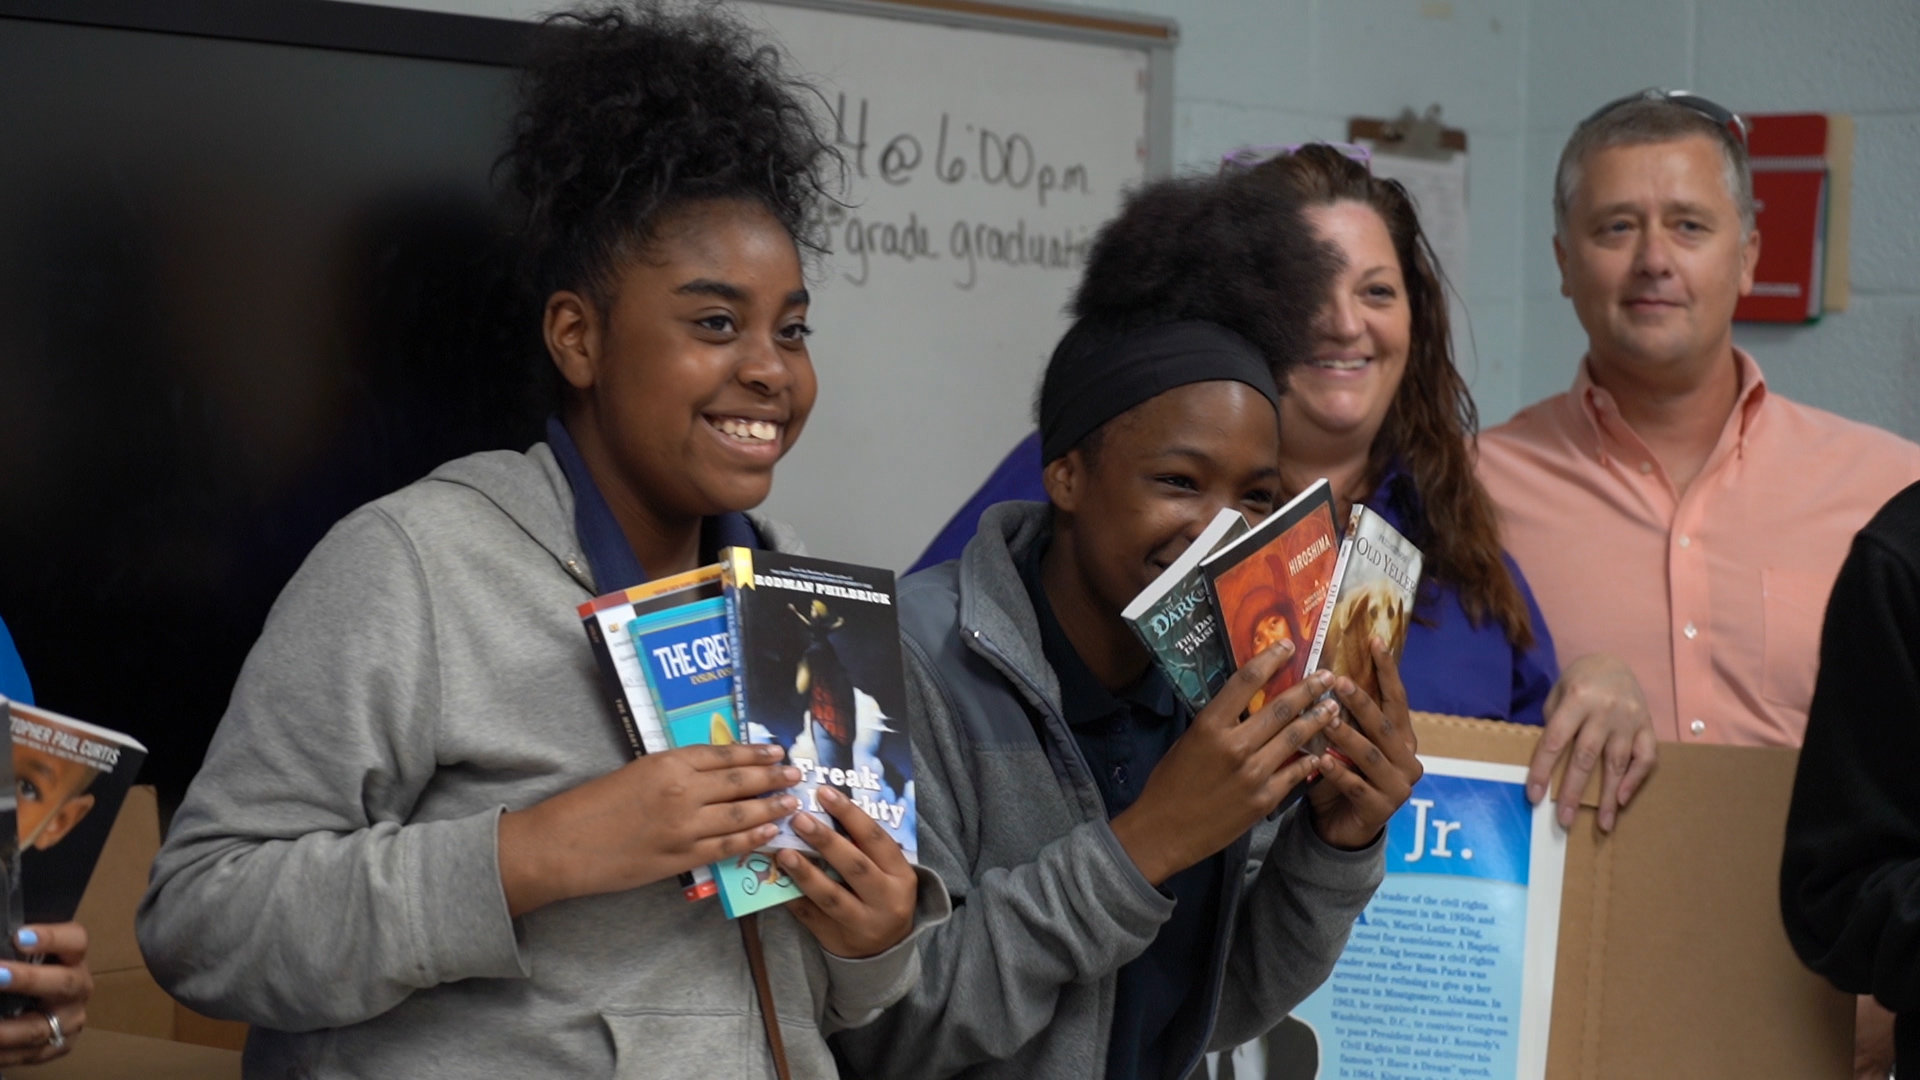 Ebenezer Middle School students show some of the books bought for their classroom by Sumter manufacturer BD. The company has adopted their school and will provide support for teachers and students.